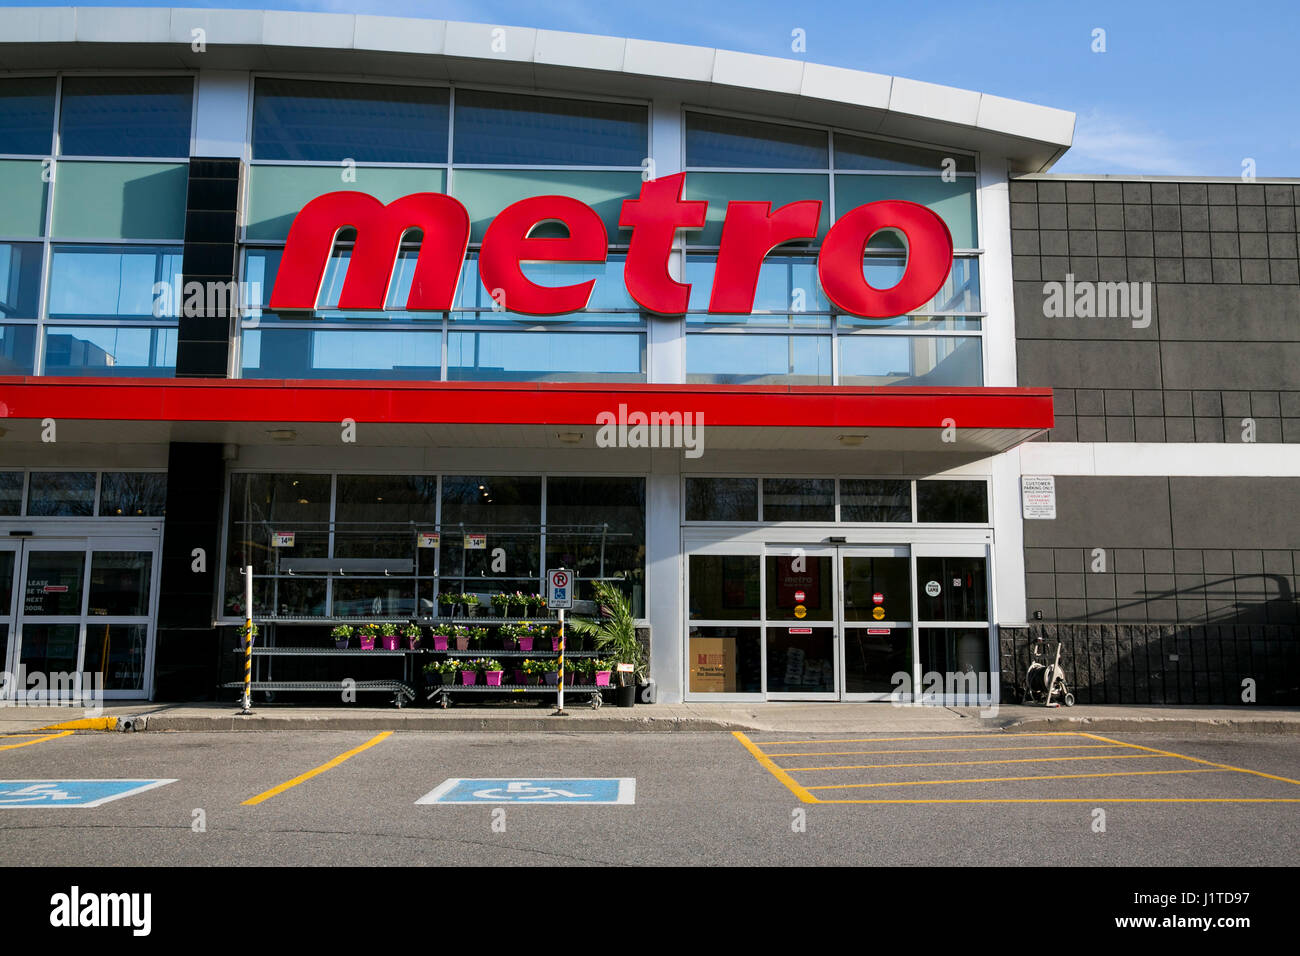 a-logo-sign-outside-of-a-metro-inc-retail-grocery-store-in-north-york-J1TD97.jpg